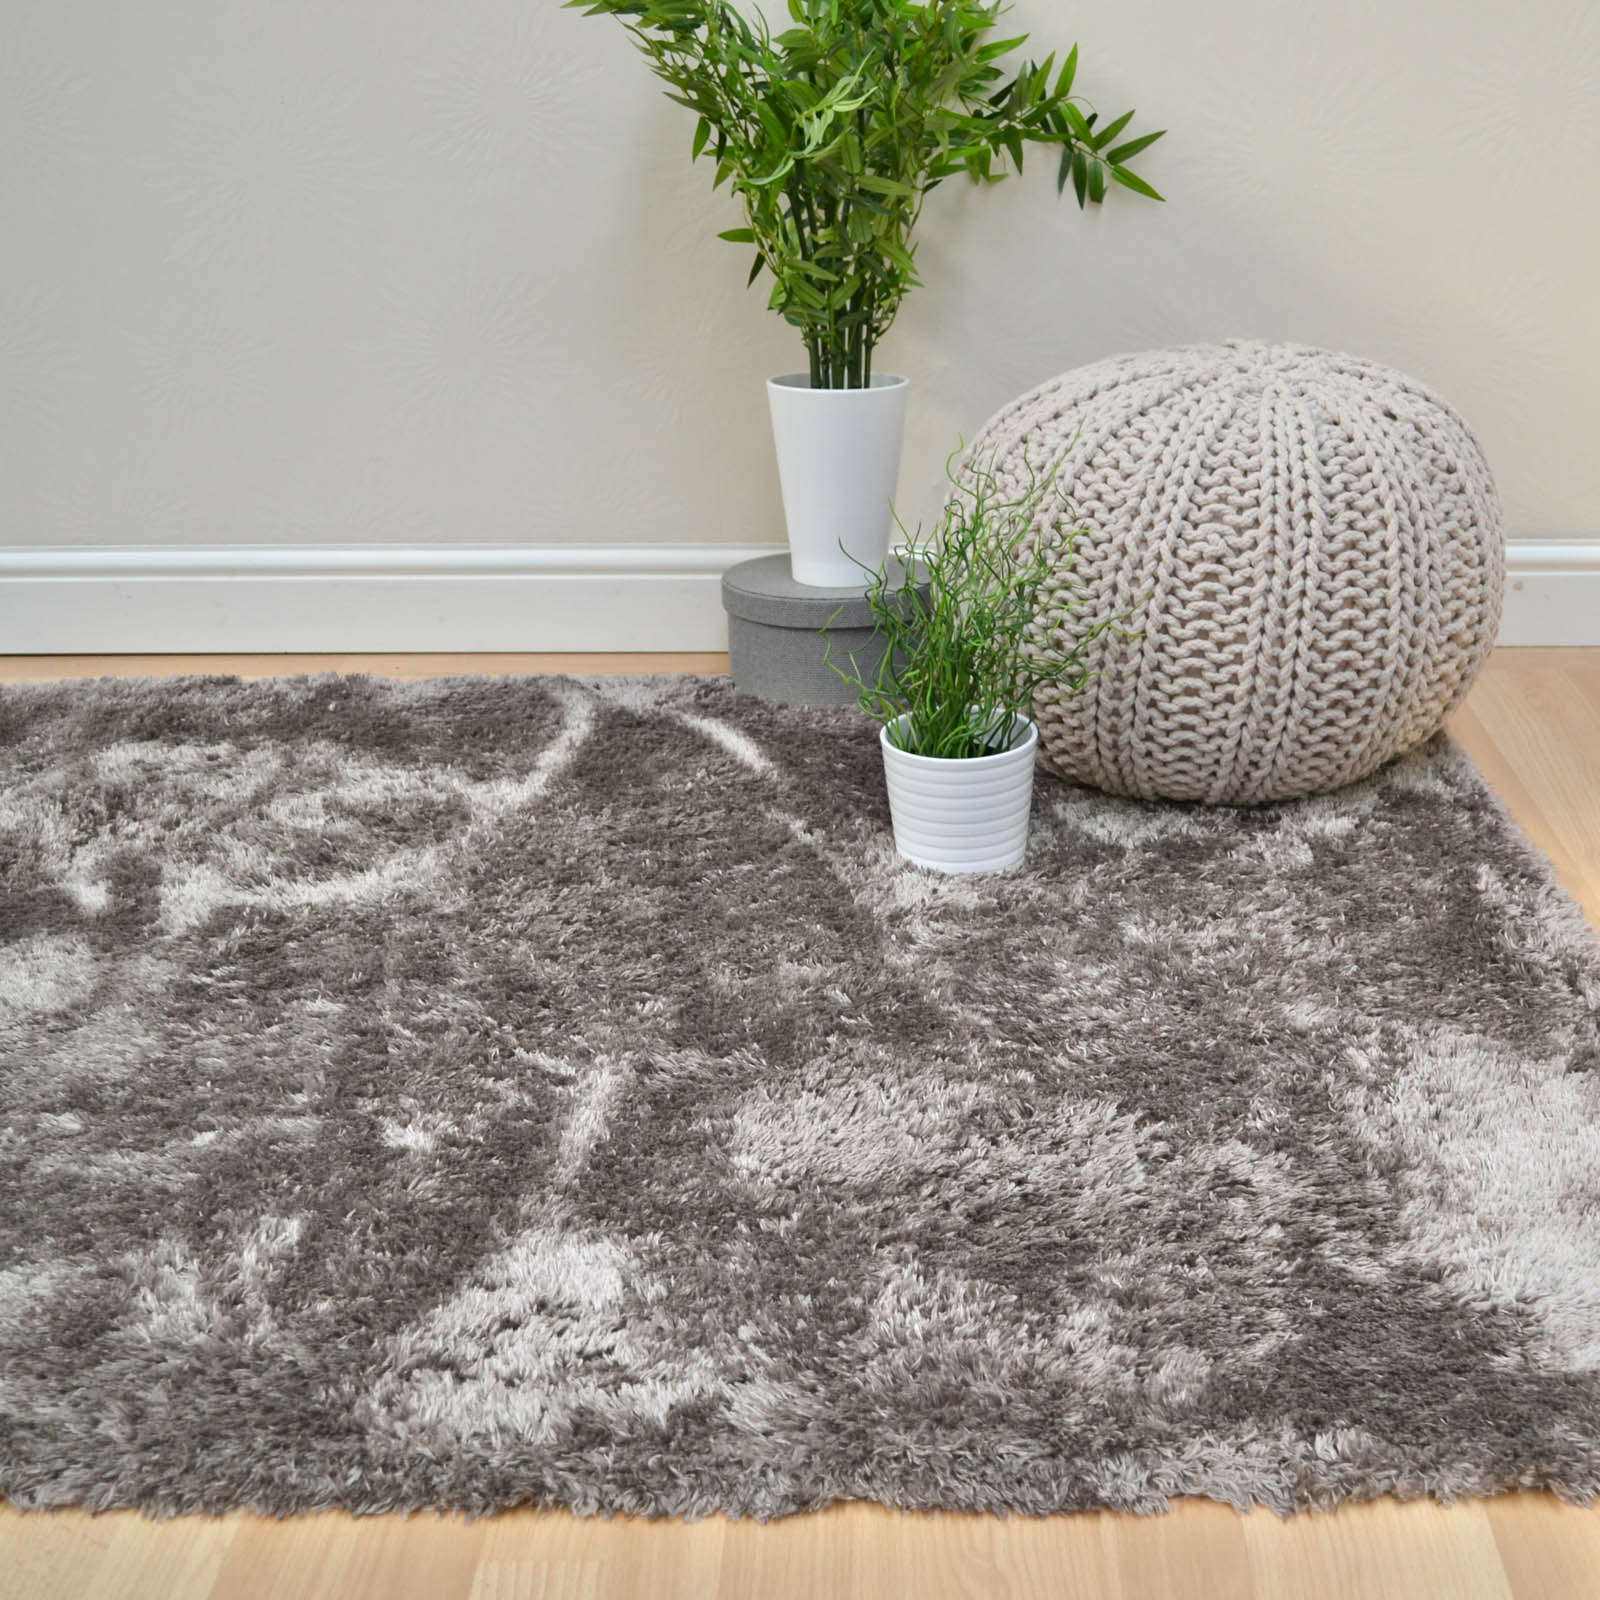 Plantation Marshmallow Rugs MAR01 in Taupe